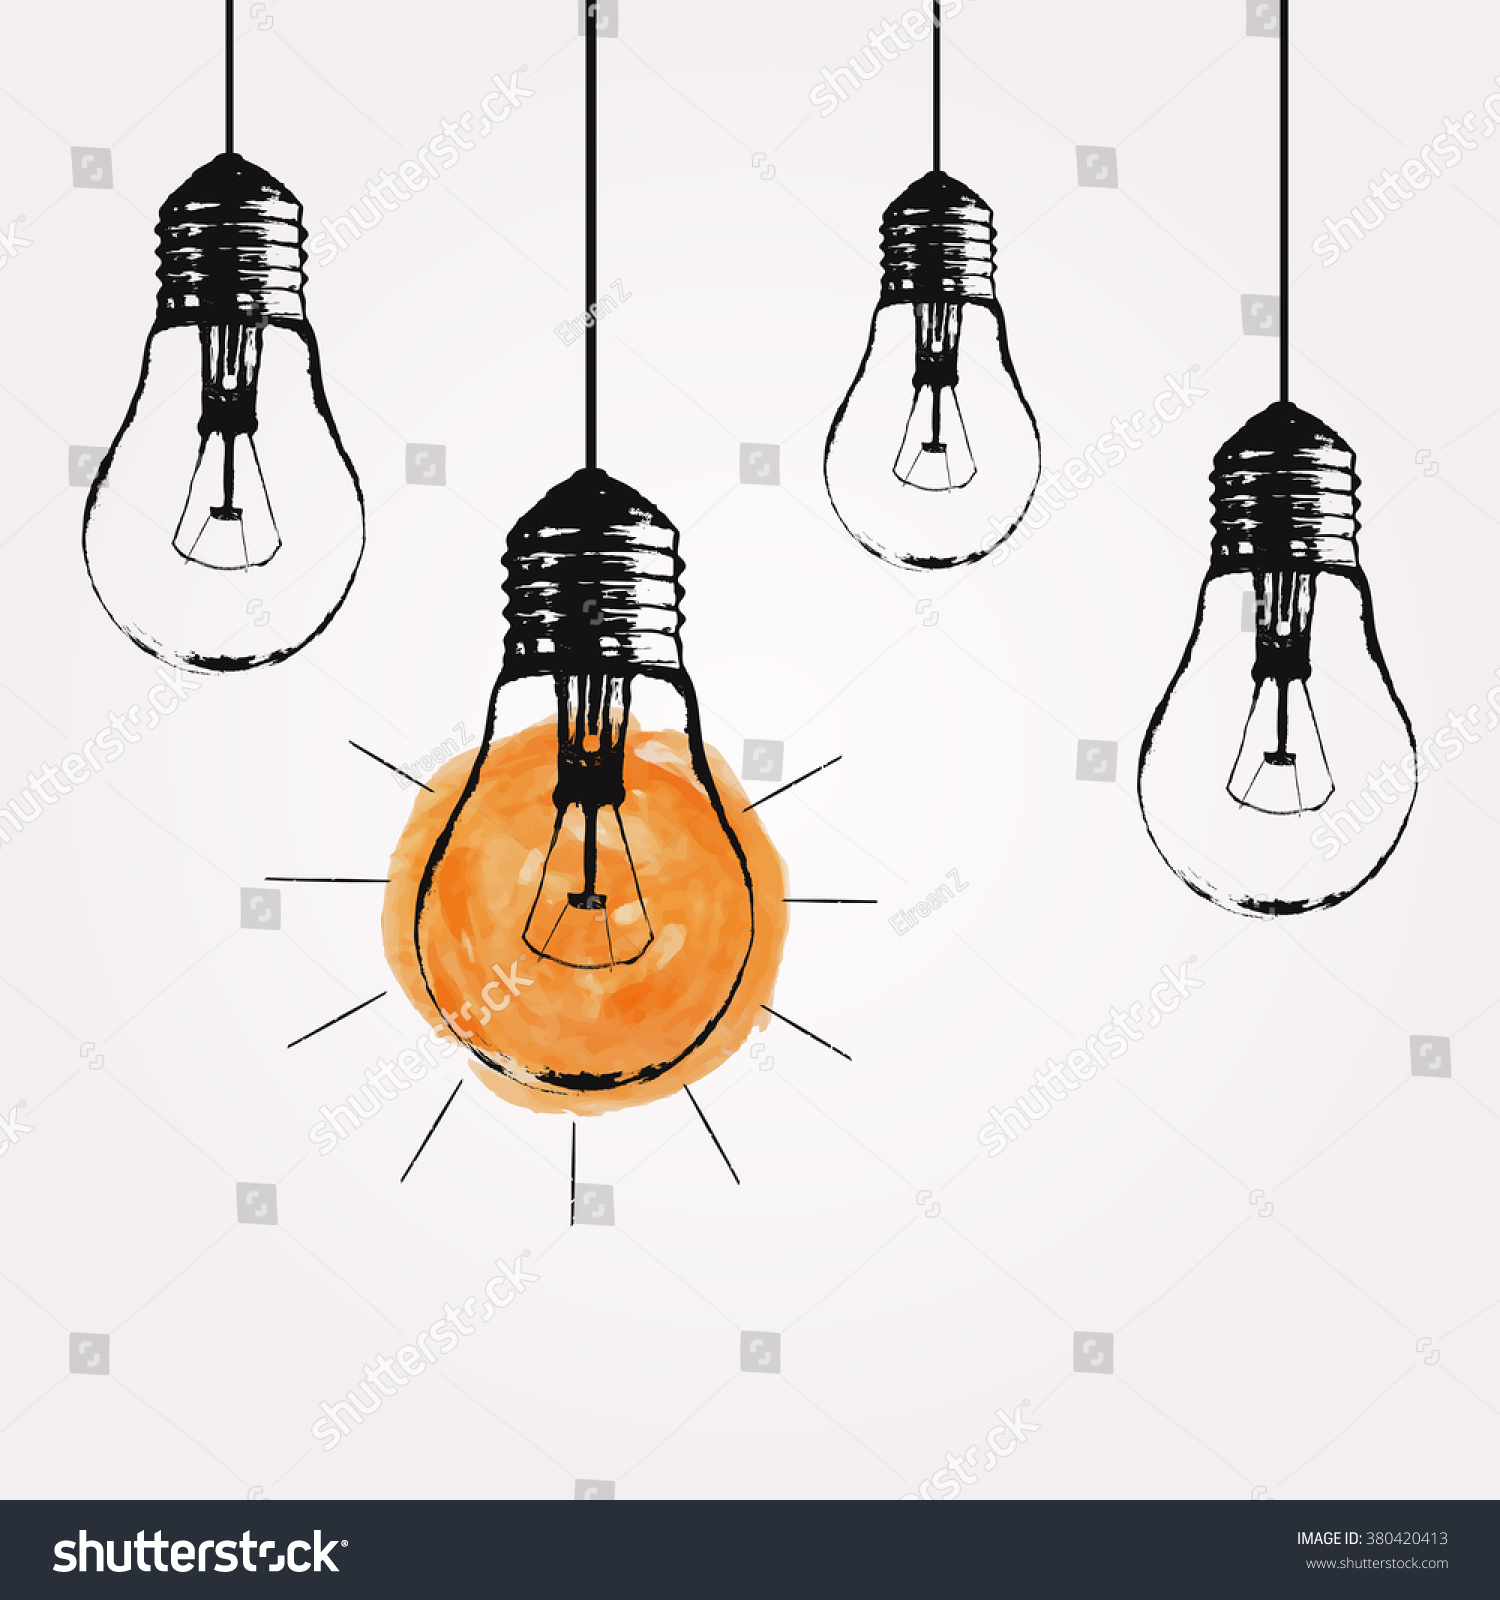 Vector Grunge Illustration Hanging Light Bulbs Stock Vector